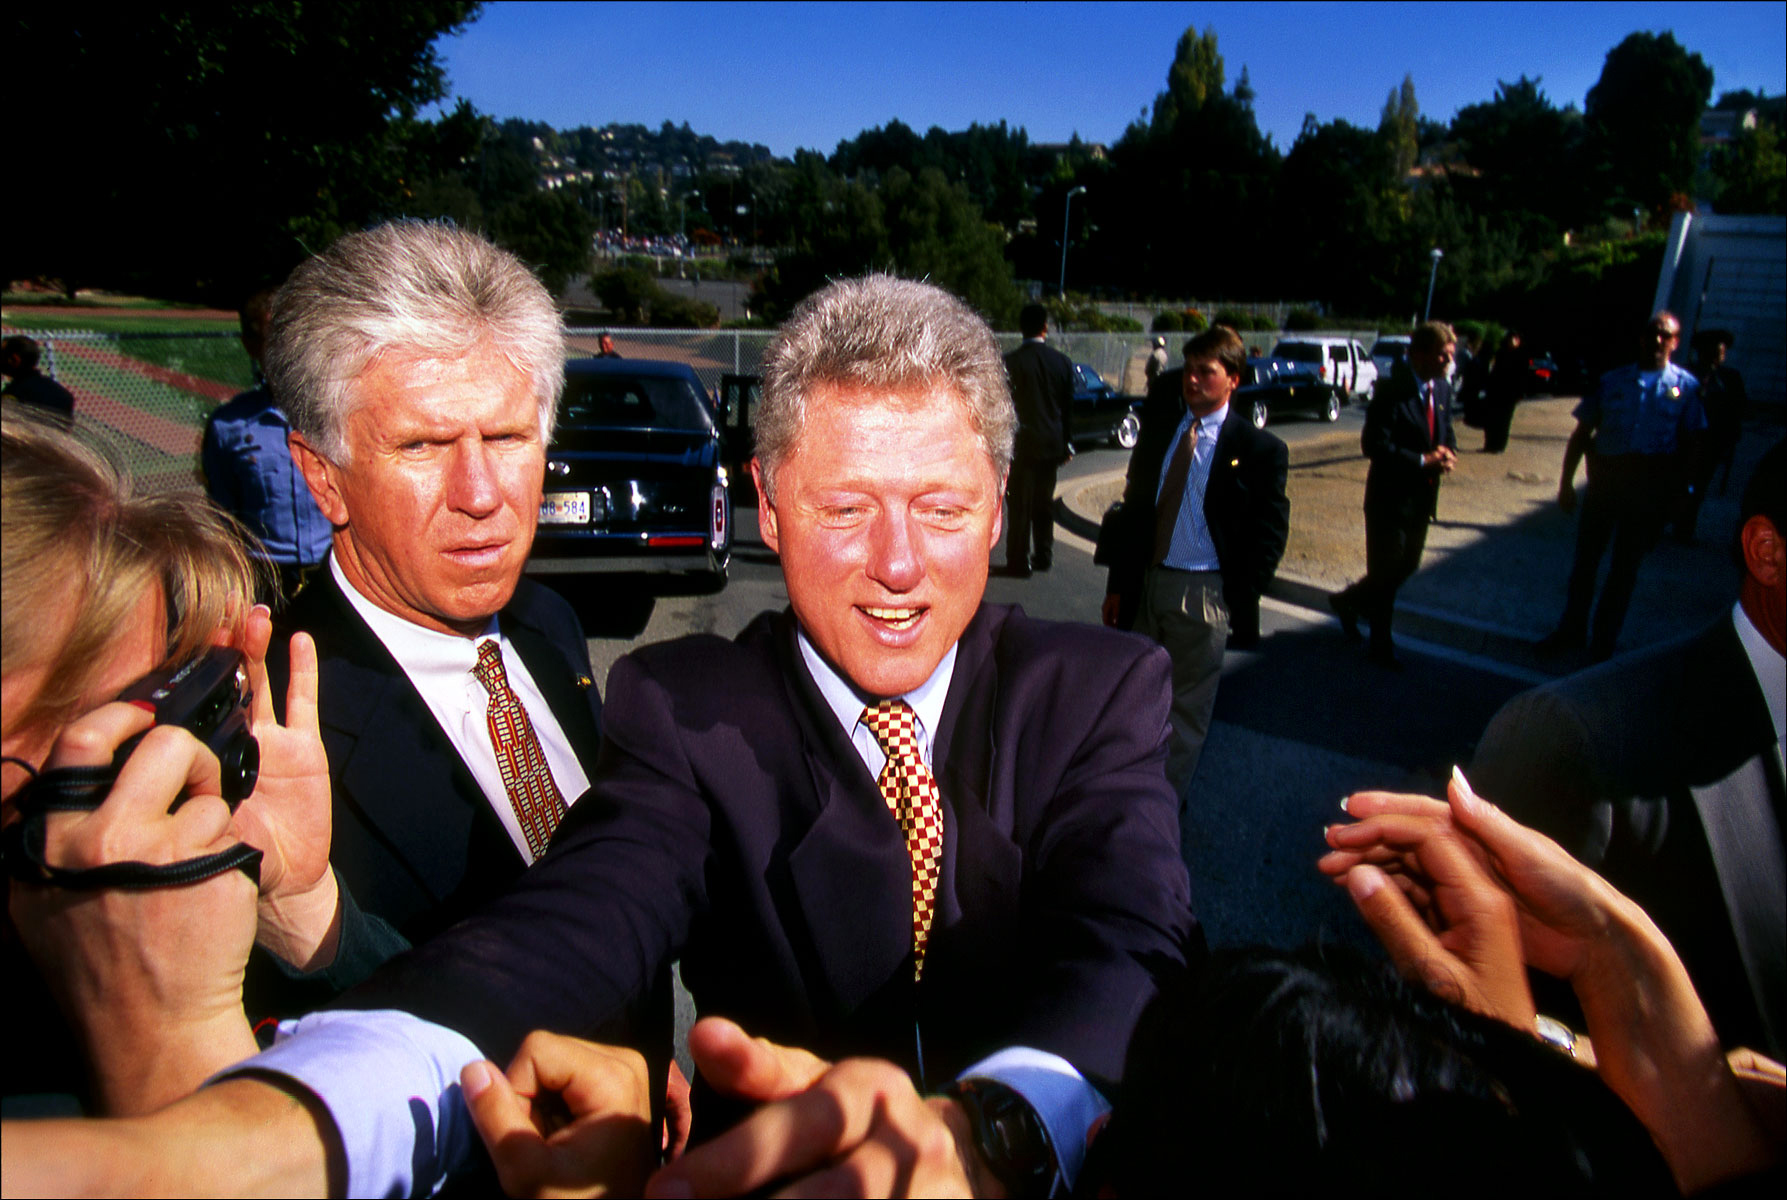 Photo of President Clinton (while he was President), flanked by Secret Service Agents as he greets bystanders near San Francisco. (for Business Week magazine)